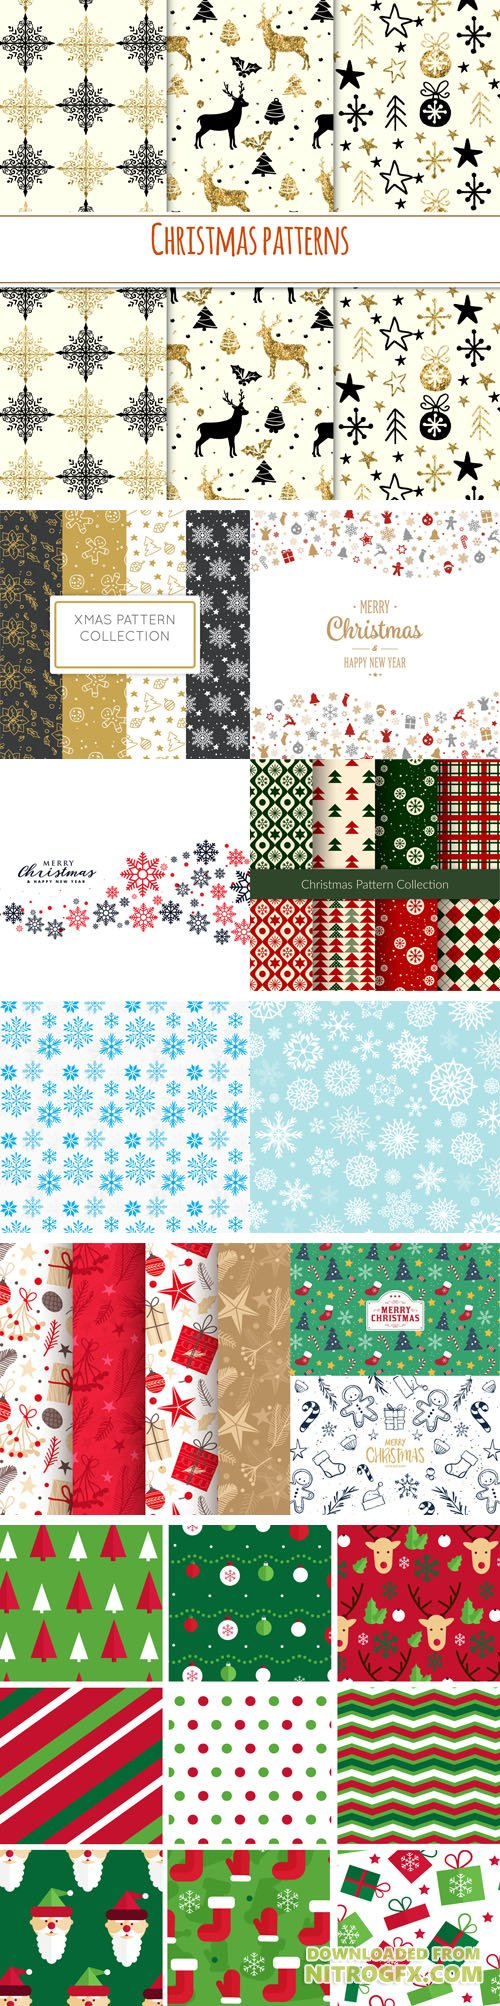 Elegant Christmas Patterns Collection in Vector